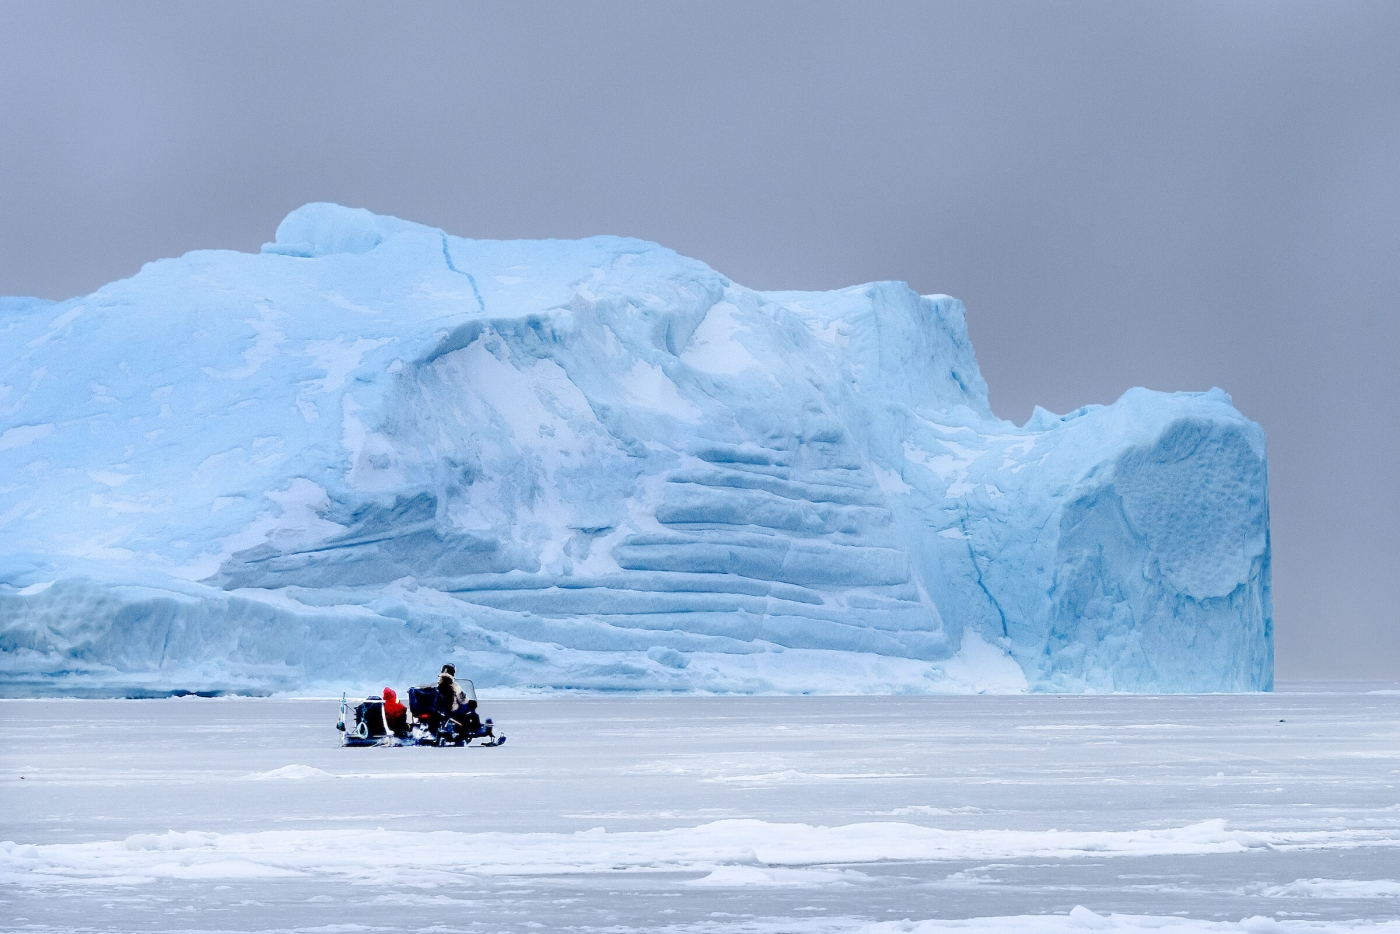 A snowmobile on the sea ice near a big iceberg in the Uummannaq area of North Greenland. Photo by Marcela Cardenas - Visit Greenland